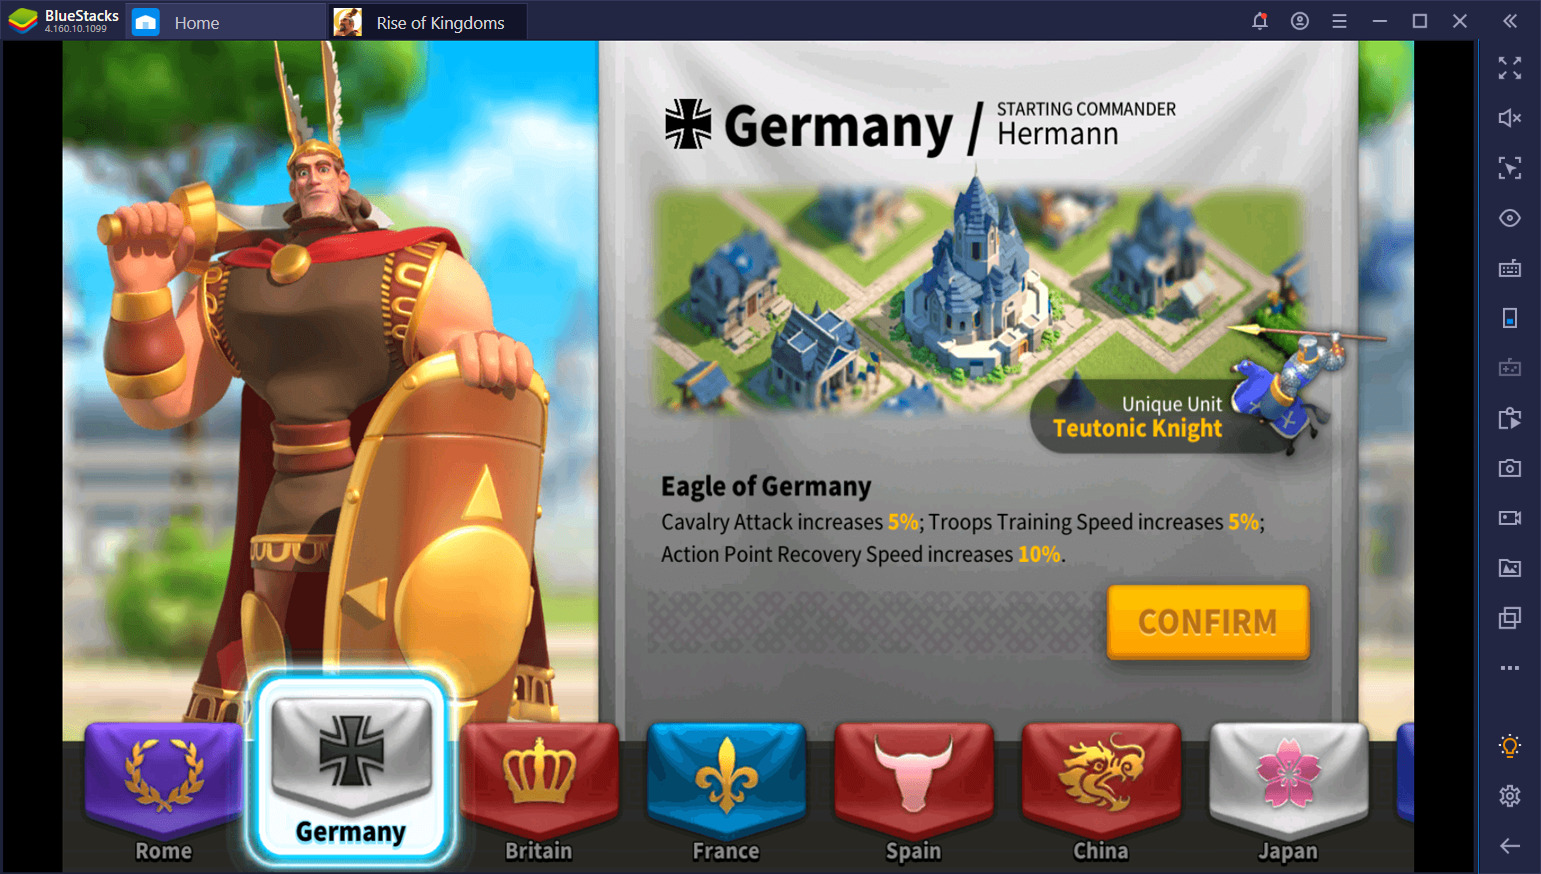 The Ultimate Guide to Choosing the Best Civilization in Rise of Kingdoms on PC